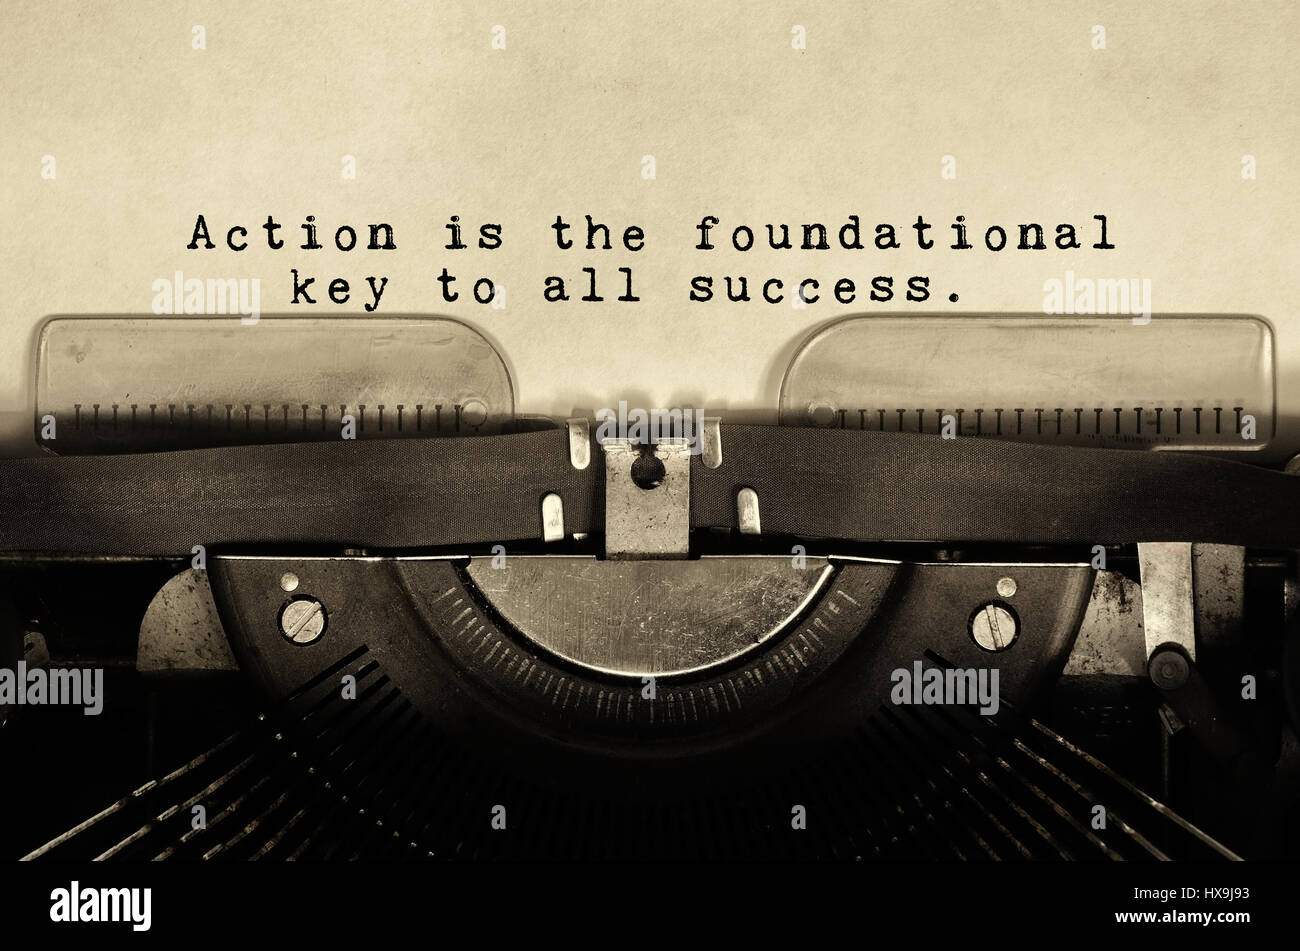 Inspirational Quotes About Success Action Is The Fundamental Key To All Success Inspirational Quotes